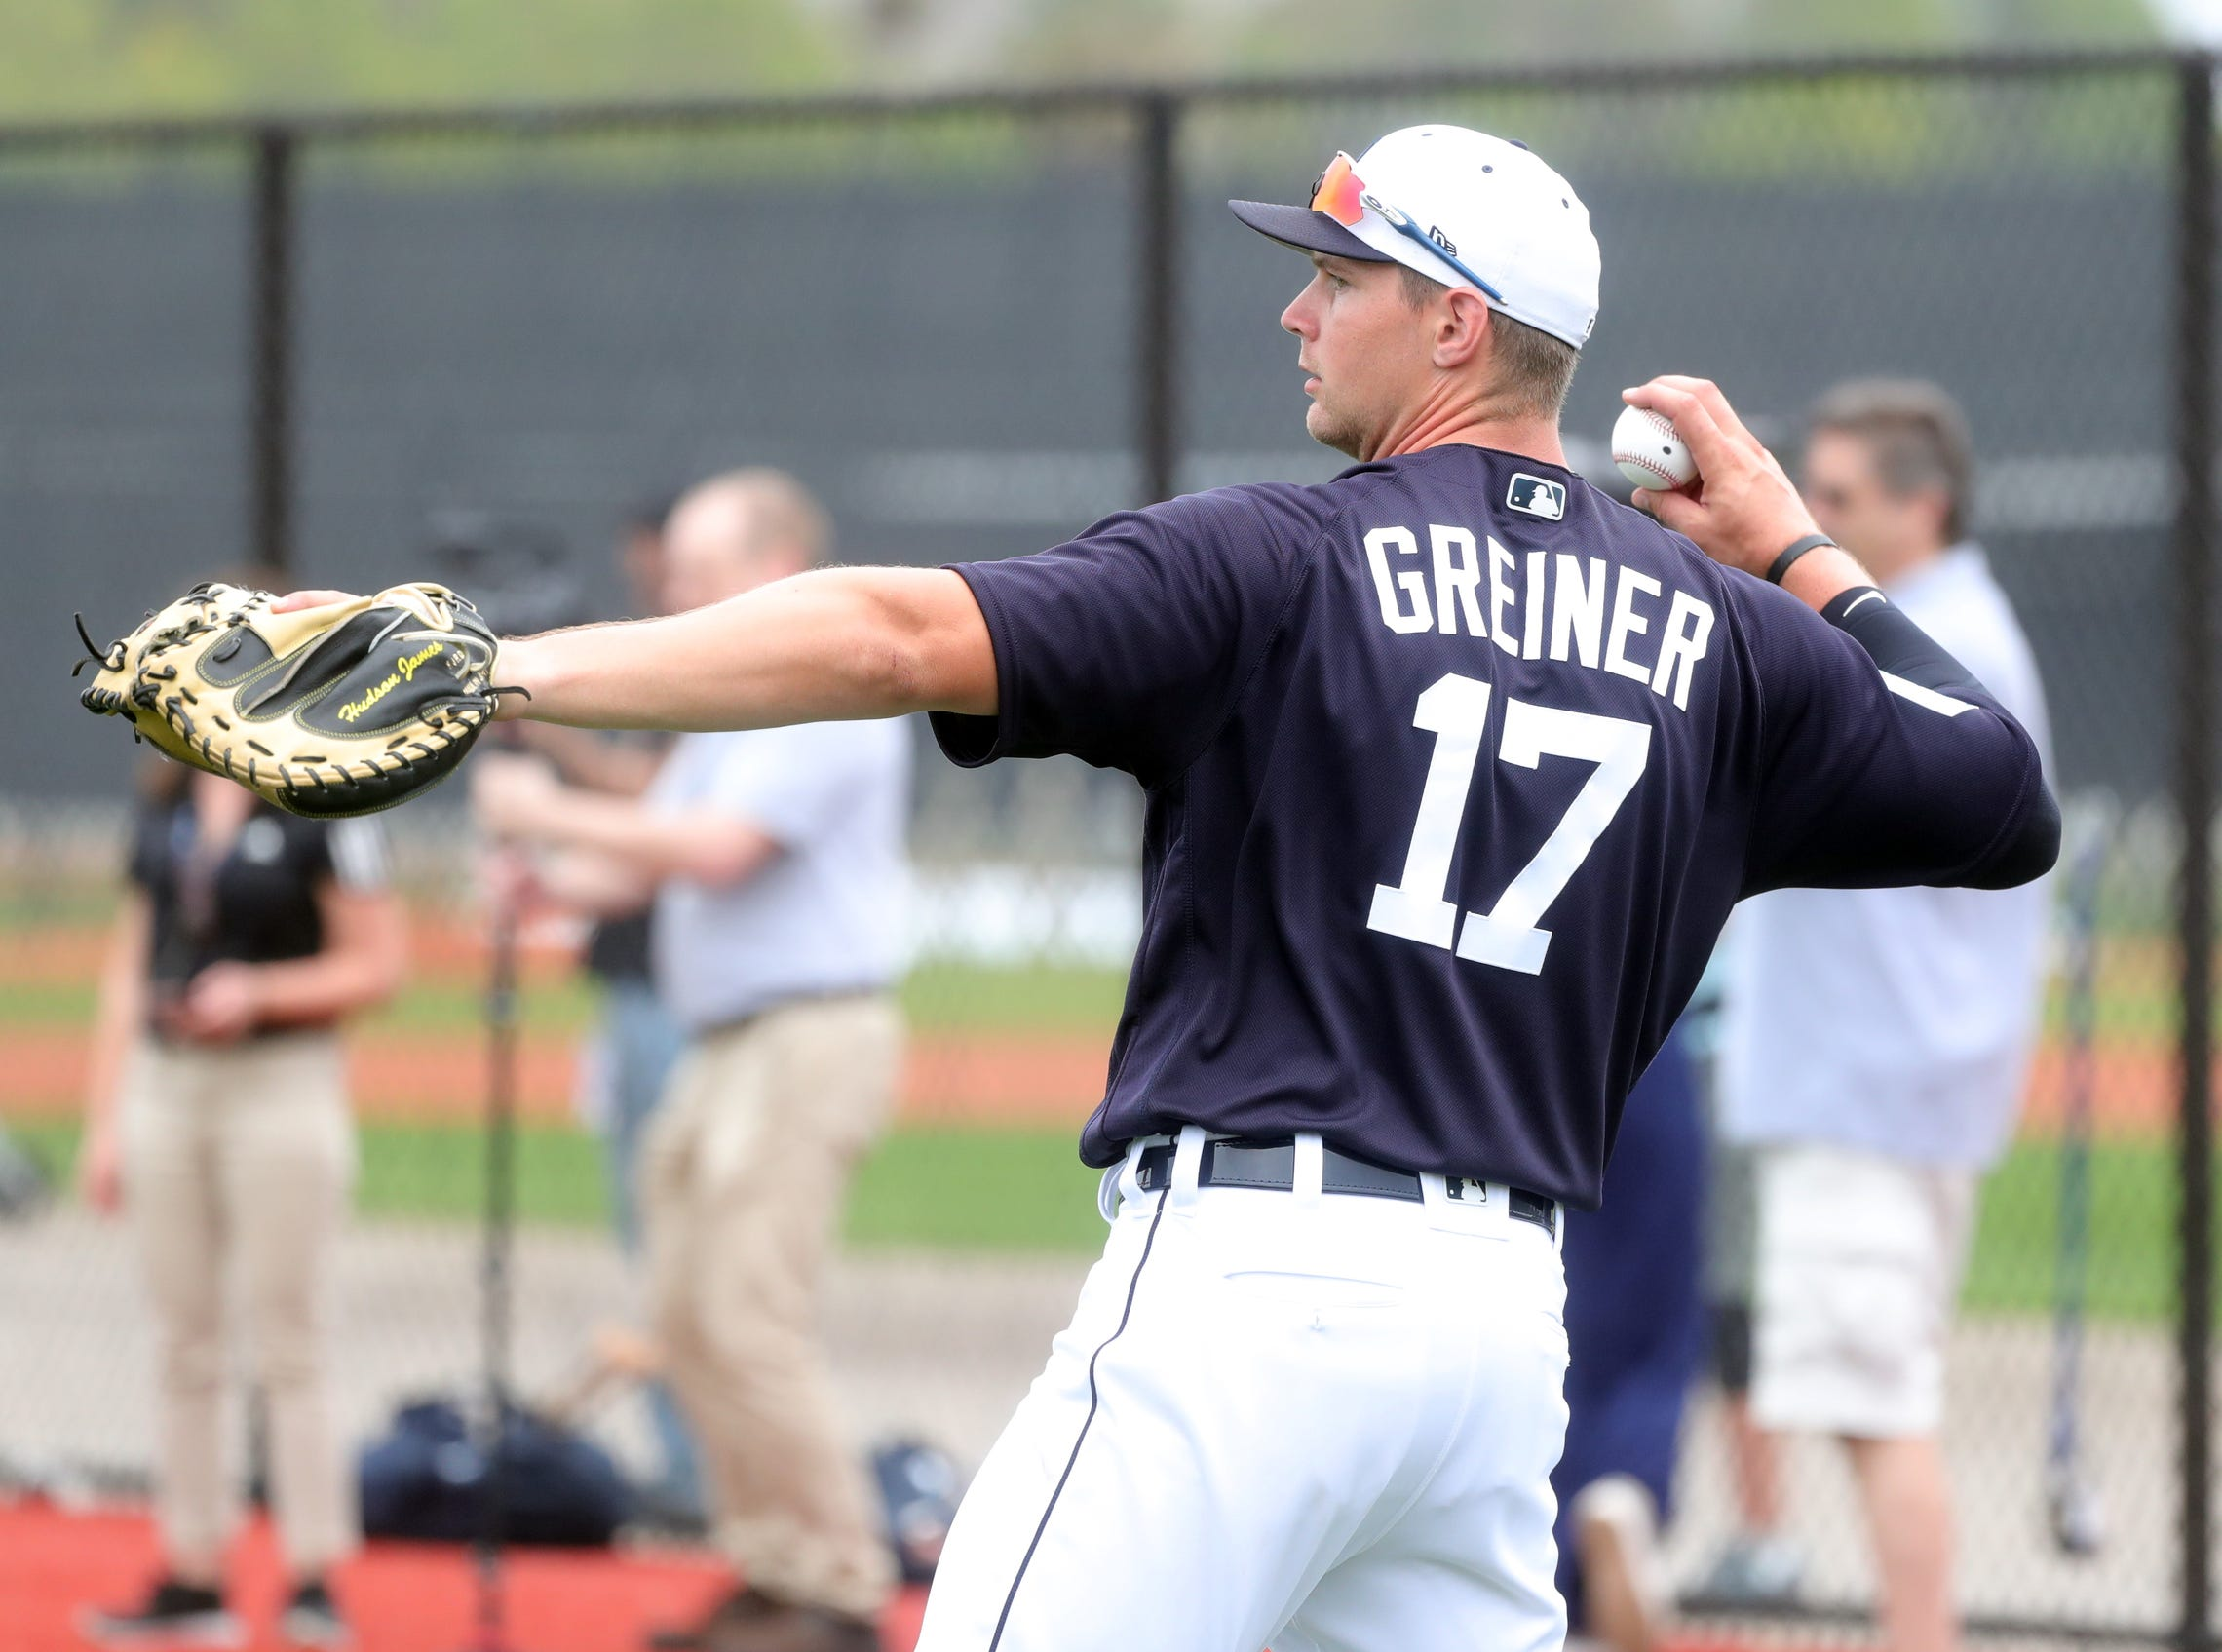 Tigers catcher Grayson Greiner warms up during the first full team spring training practice on Monday, Feb. 18, 2019, at Joker Marchant Stadium in Lakeland, Florida.